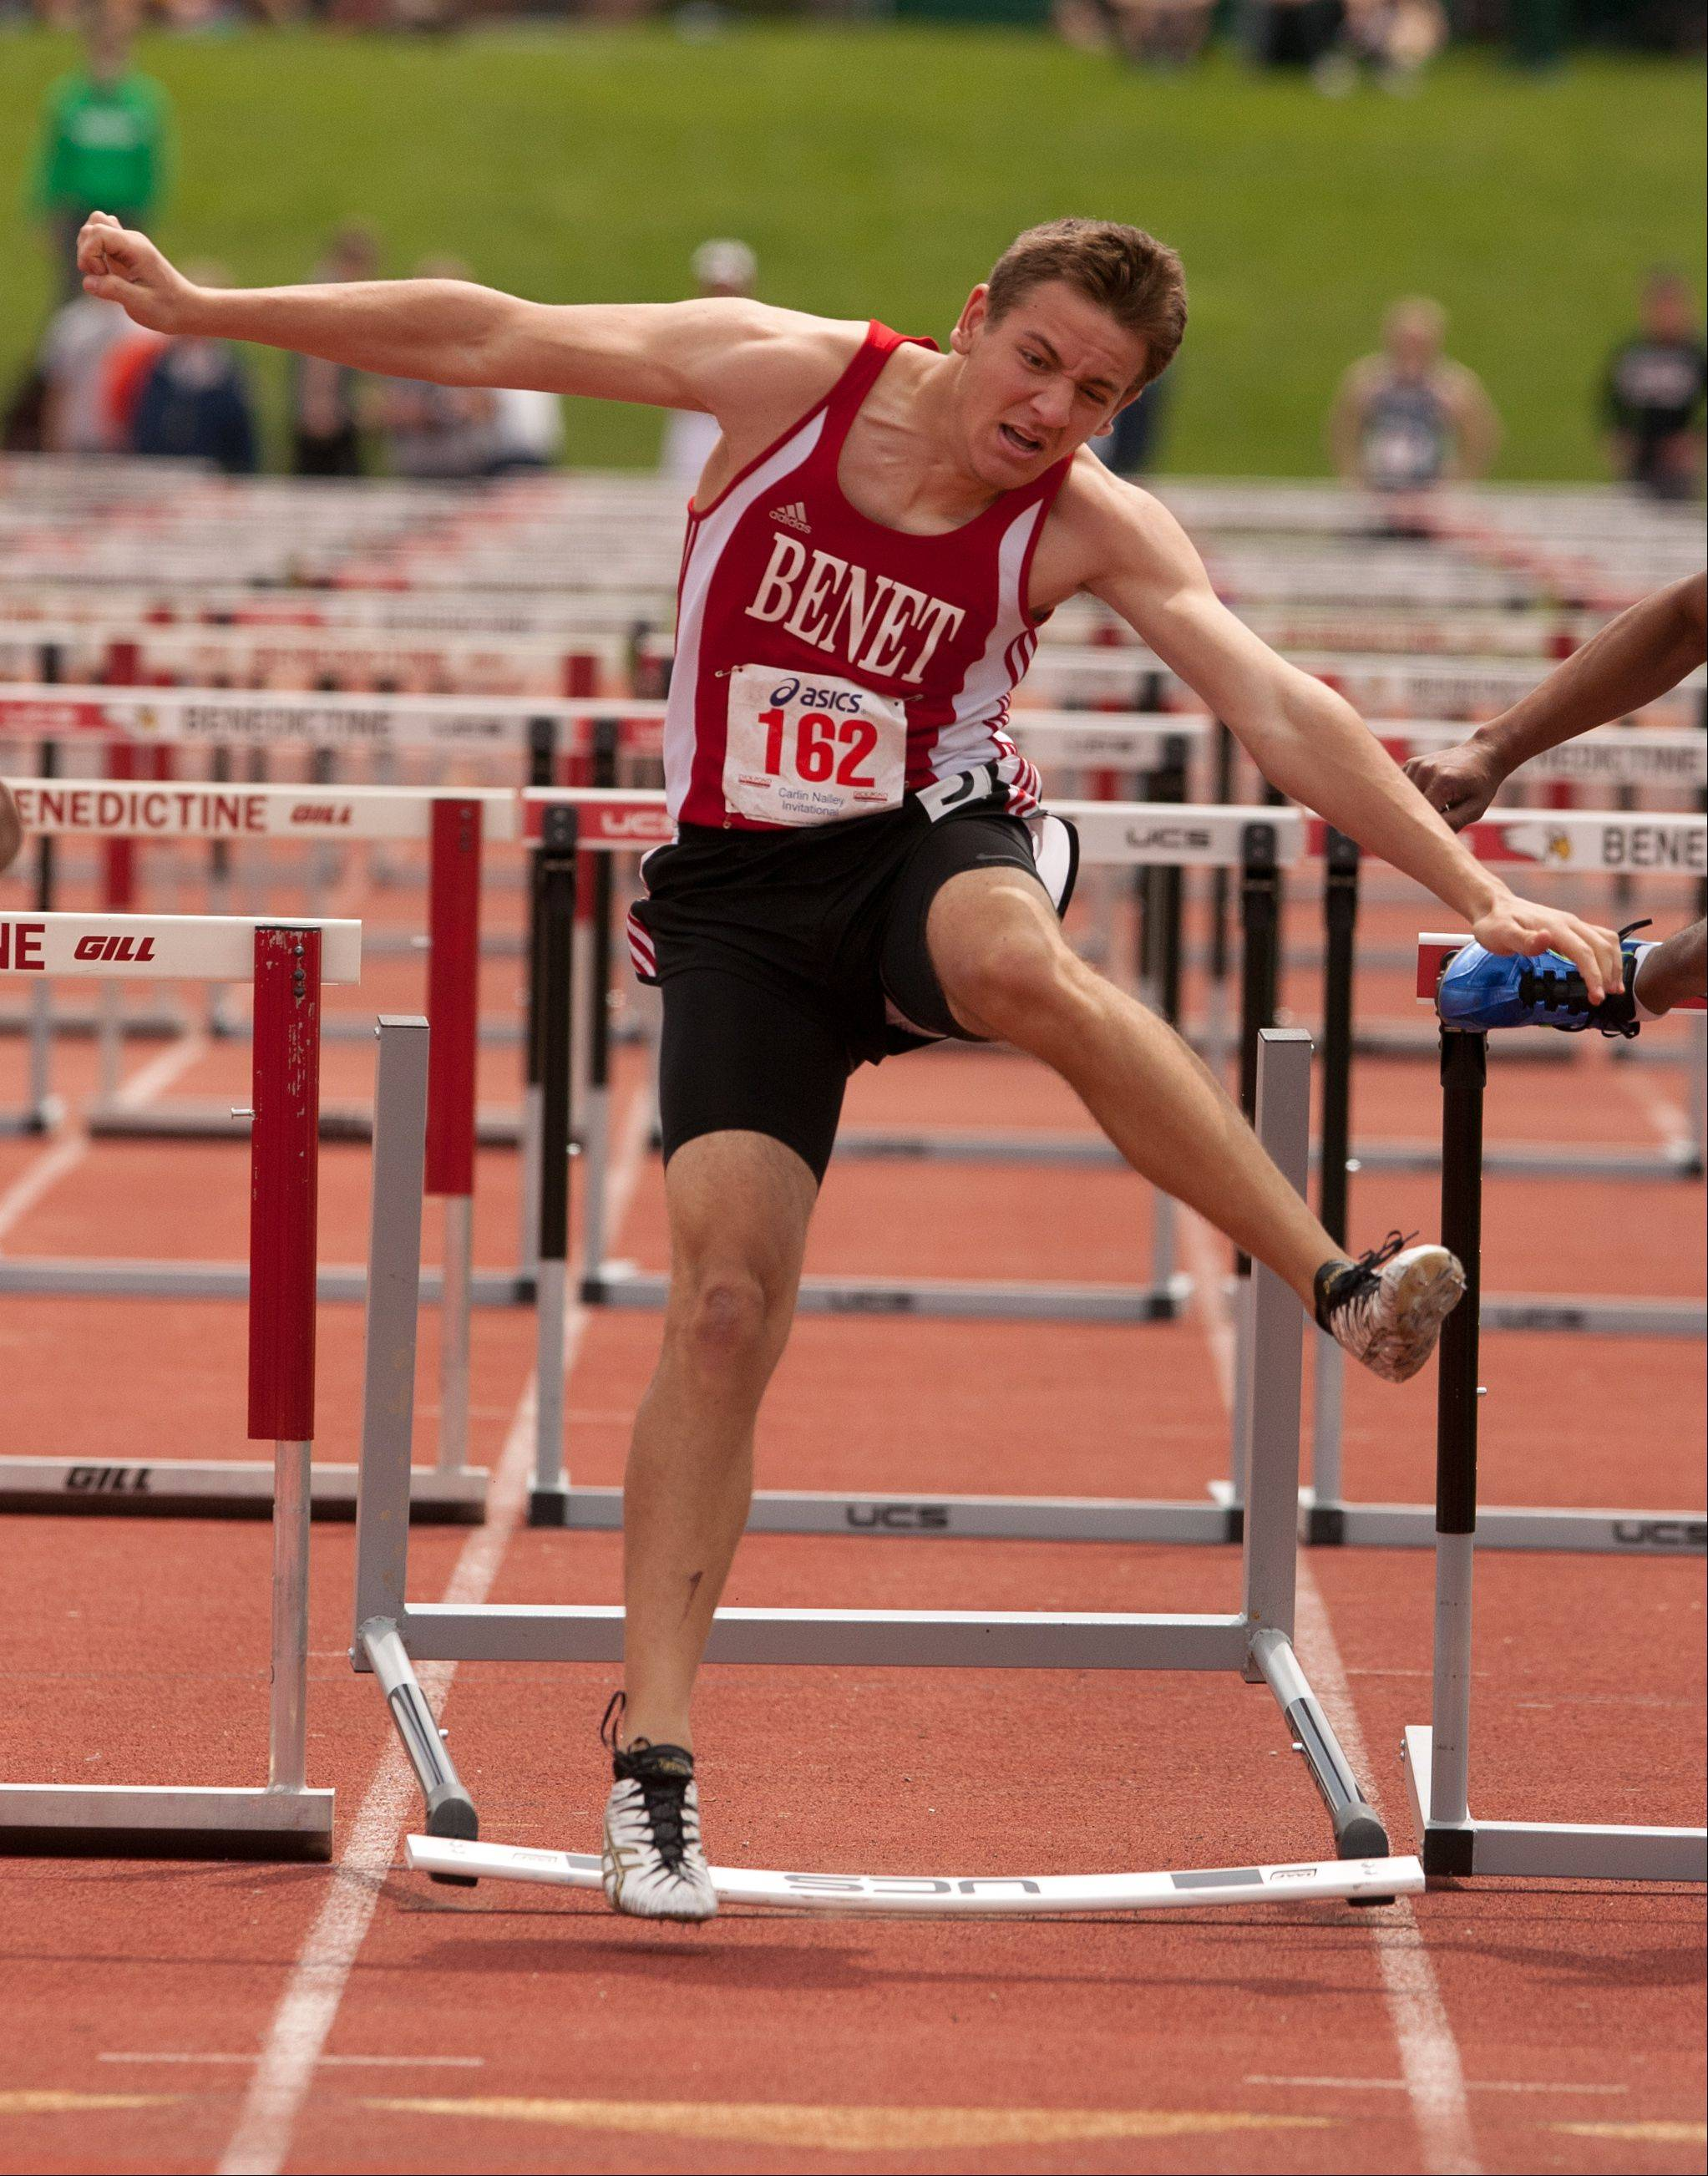 Benet's Austin Dzik competes in the 110 meter hurdles during the 46th annual Carlin Nalley Boys´ Track Invitational at Benedictine University in Lisle.